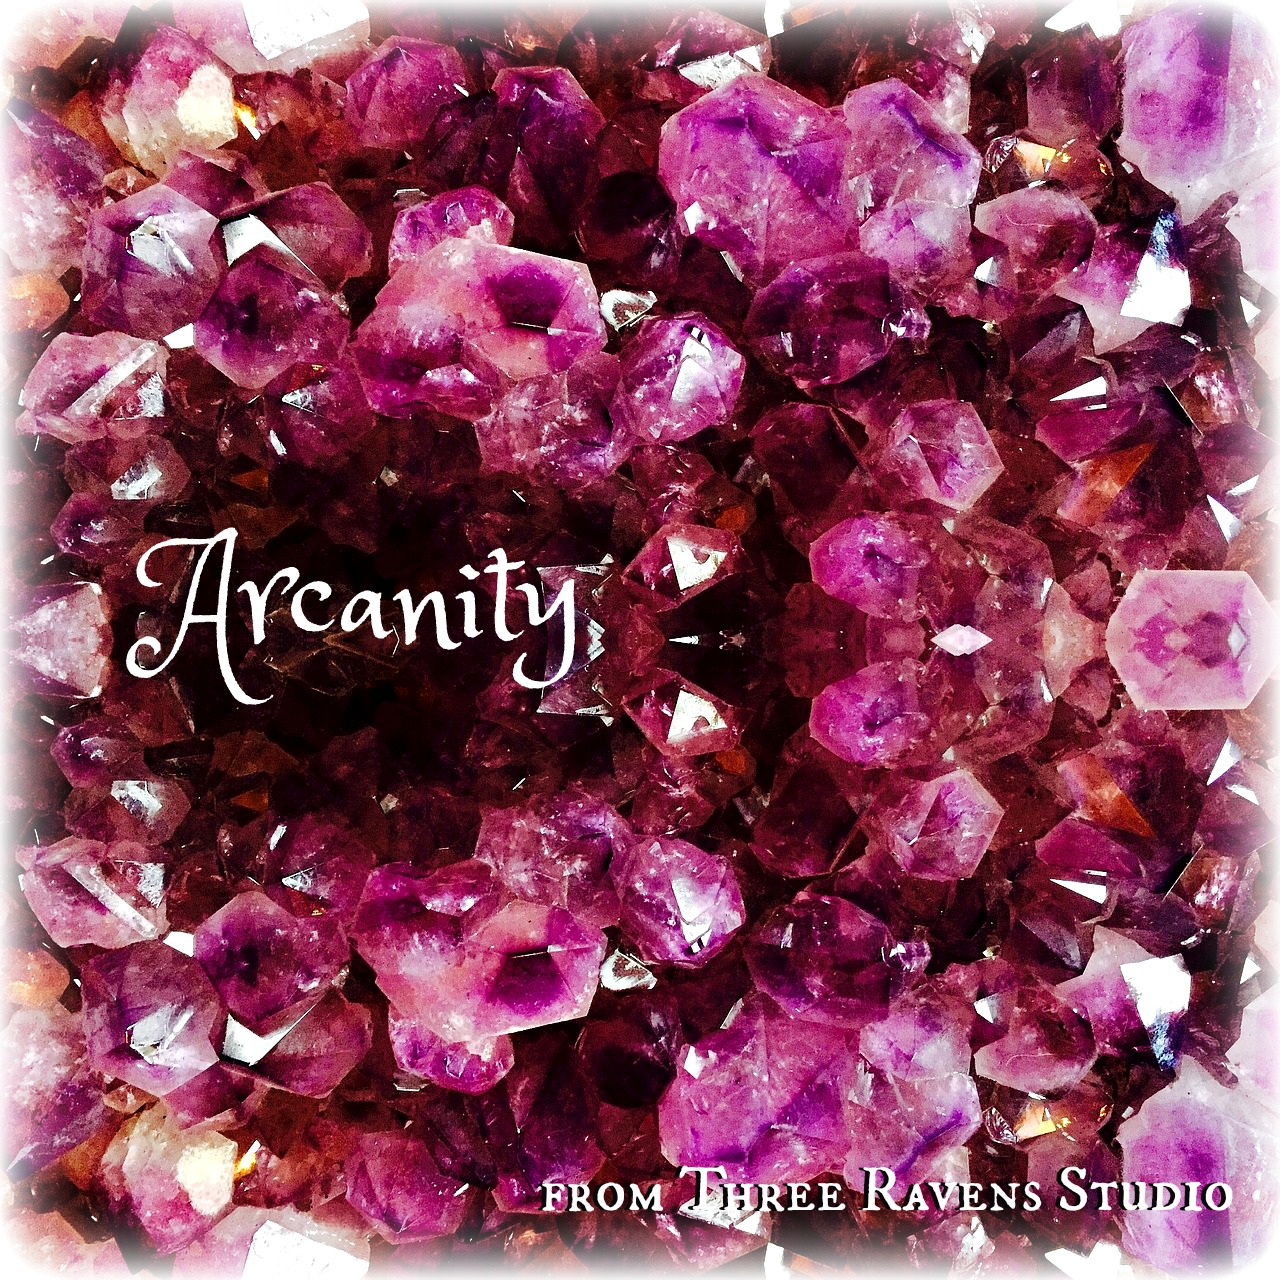 arcanity square